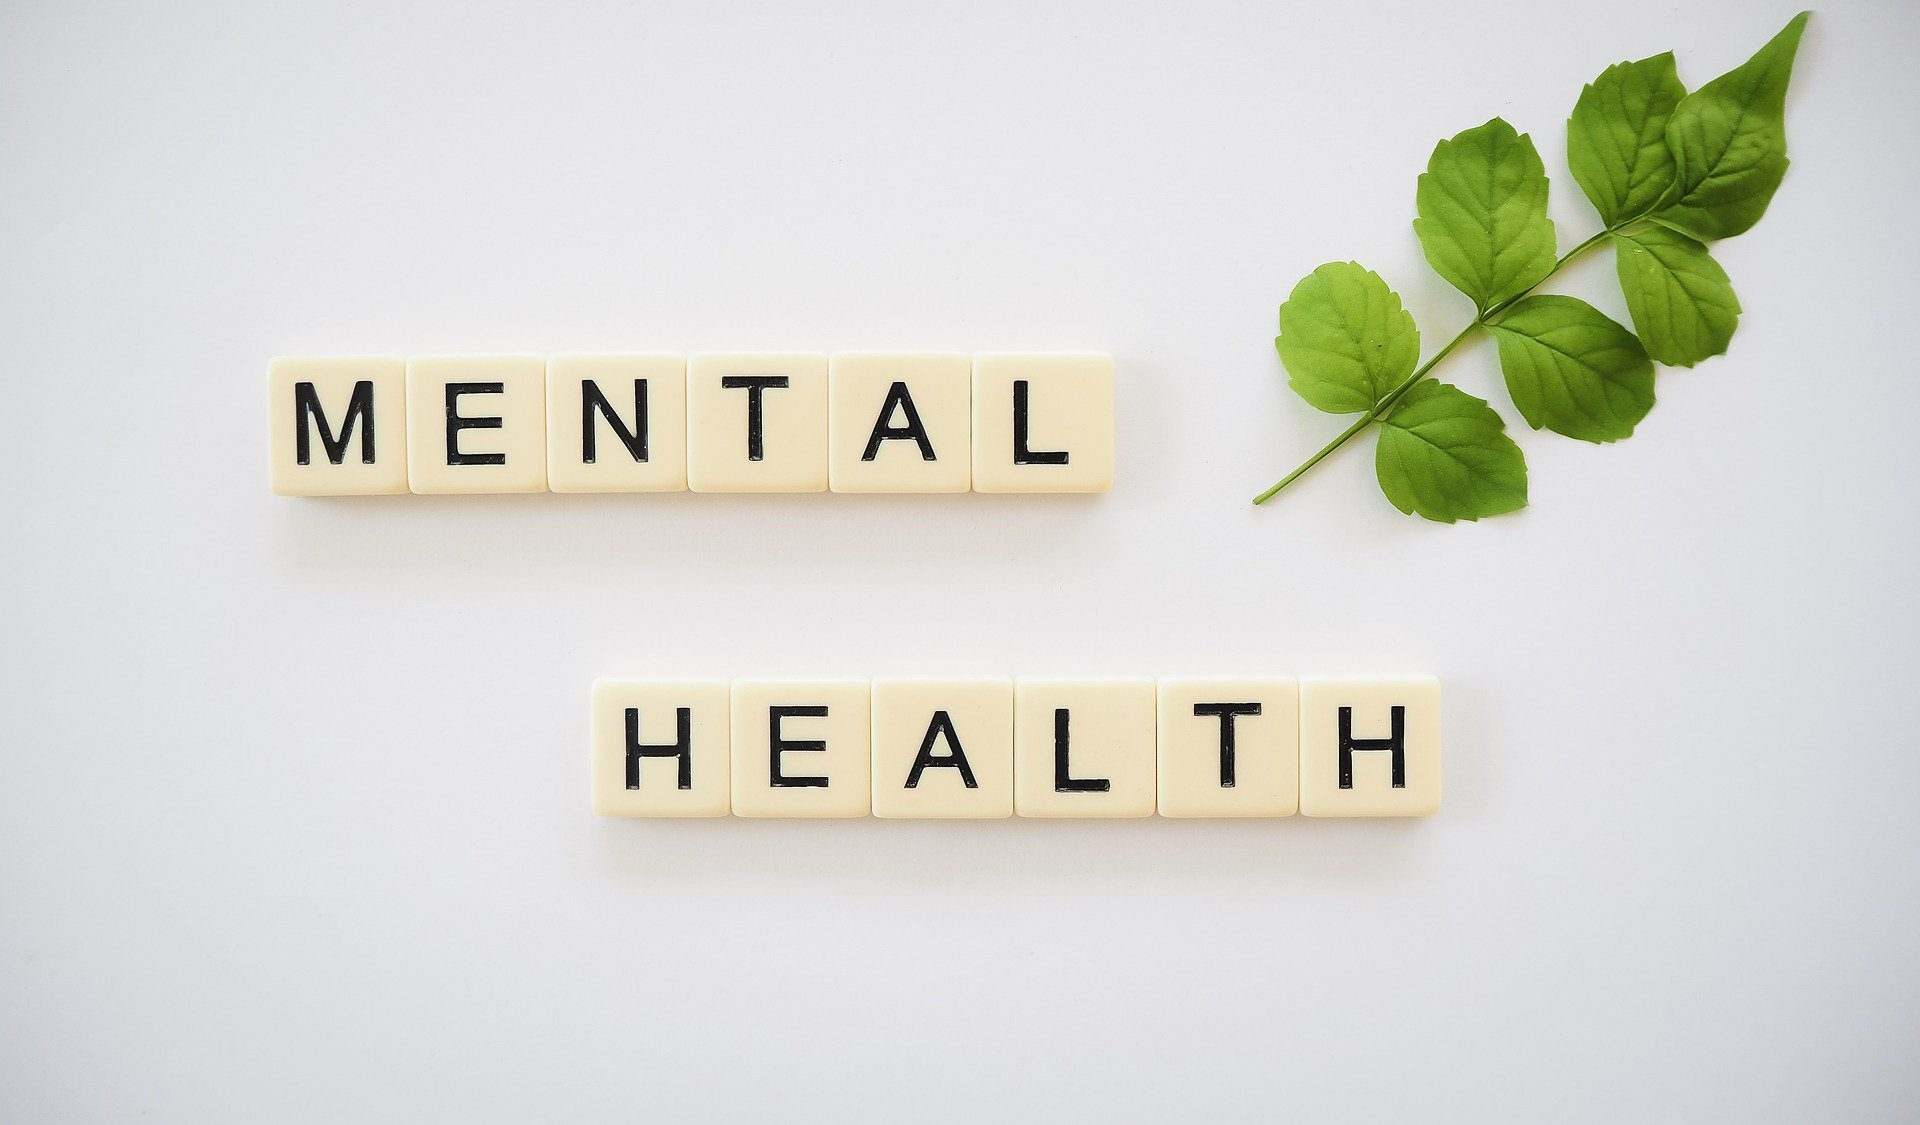 The Importance of Maintaining Mental Wellness